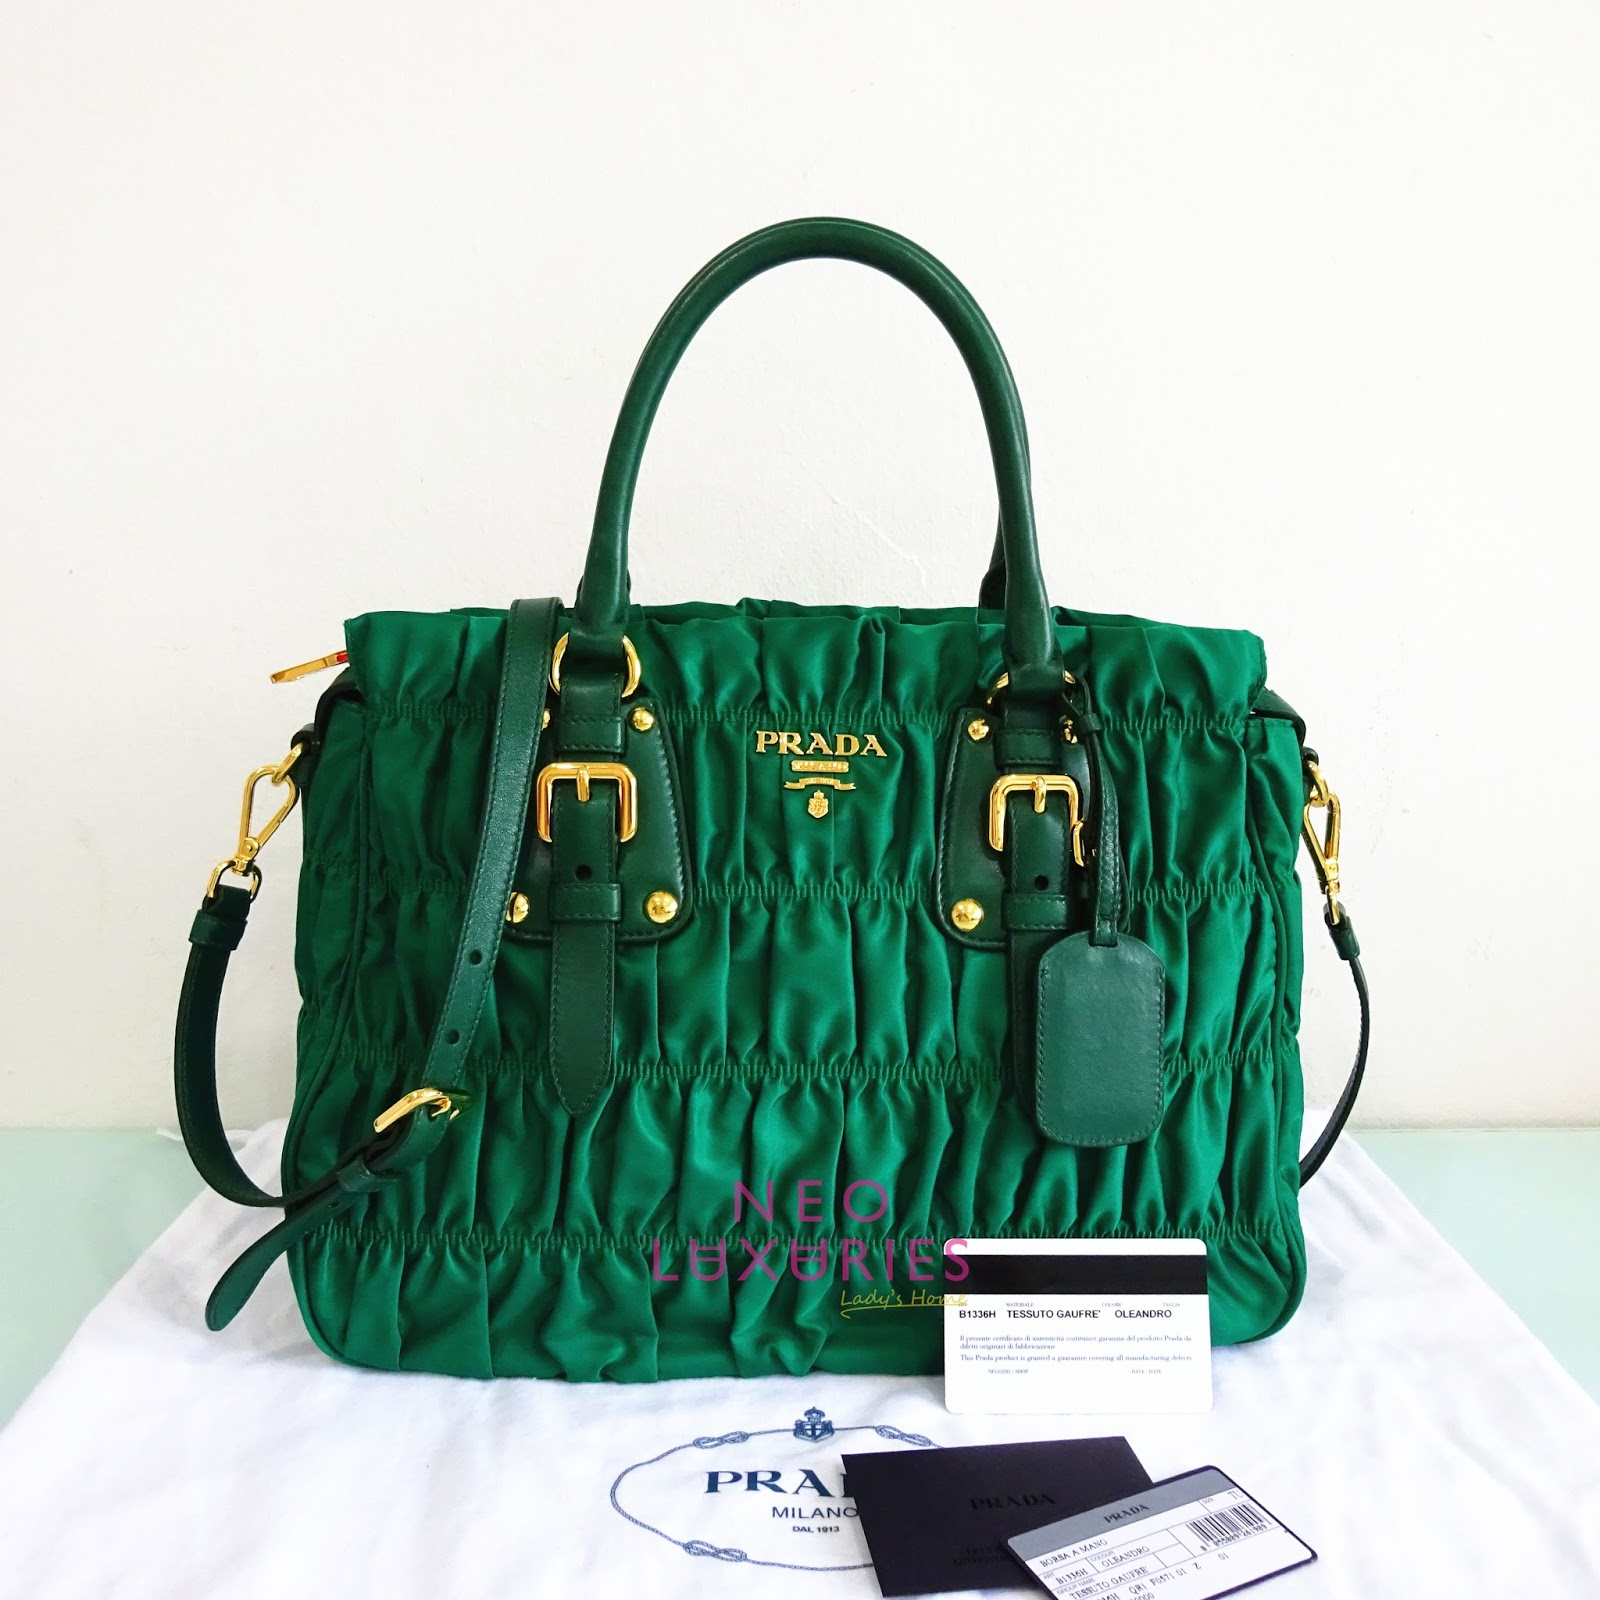 prada bags for cheap - prada tessuto gaufre clutch, prada white handbags